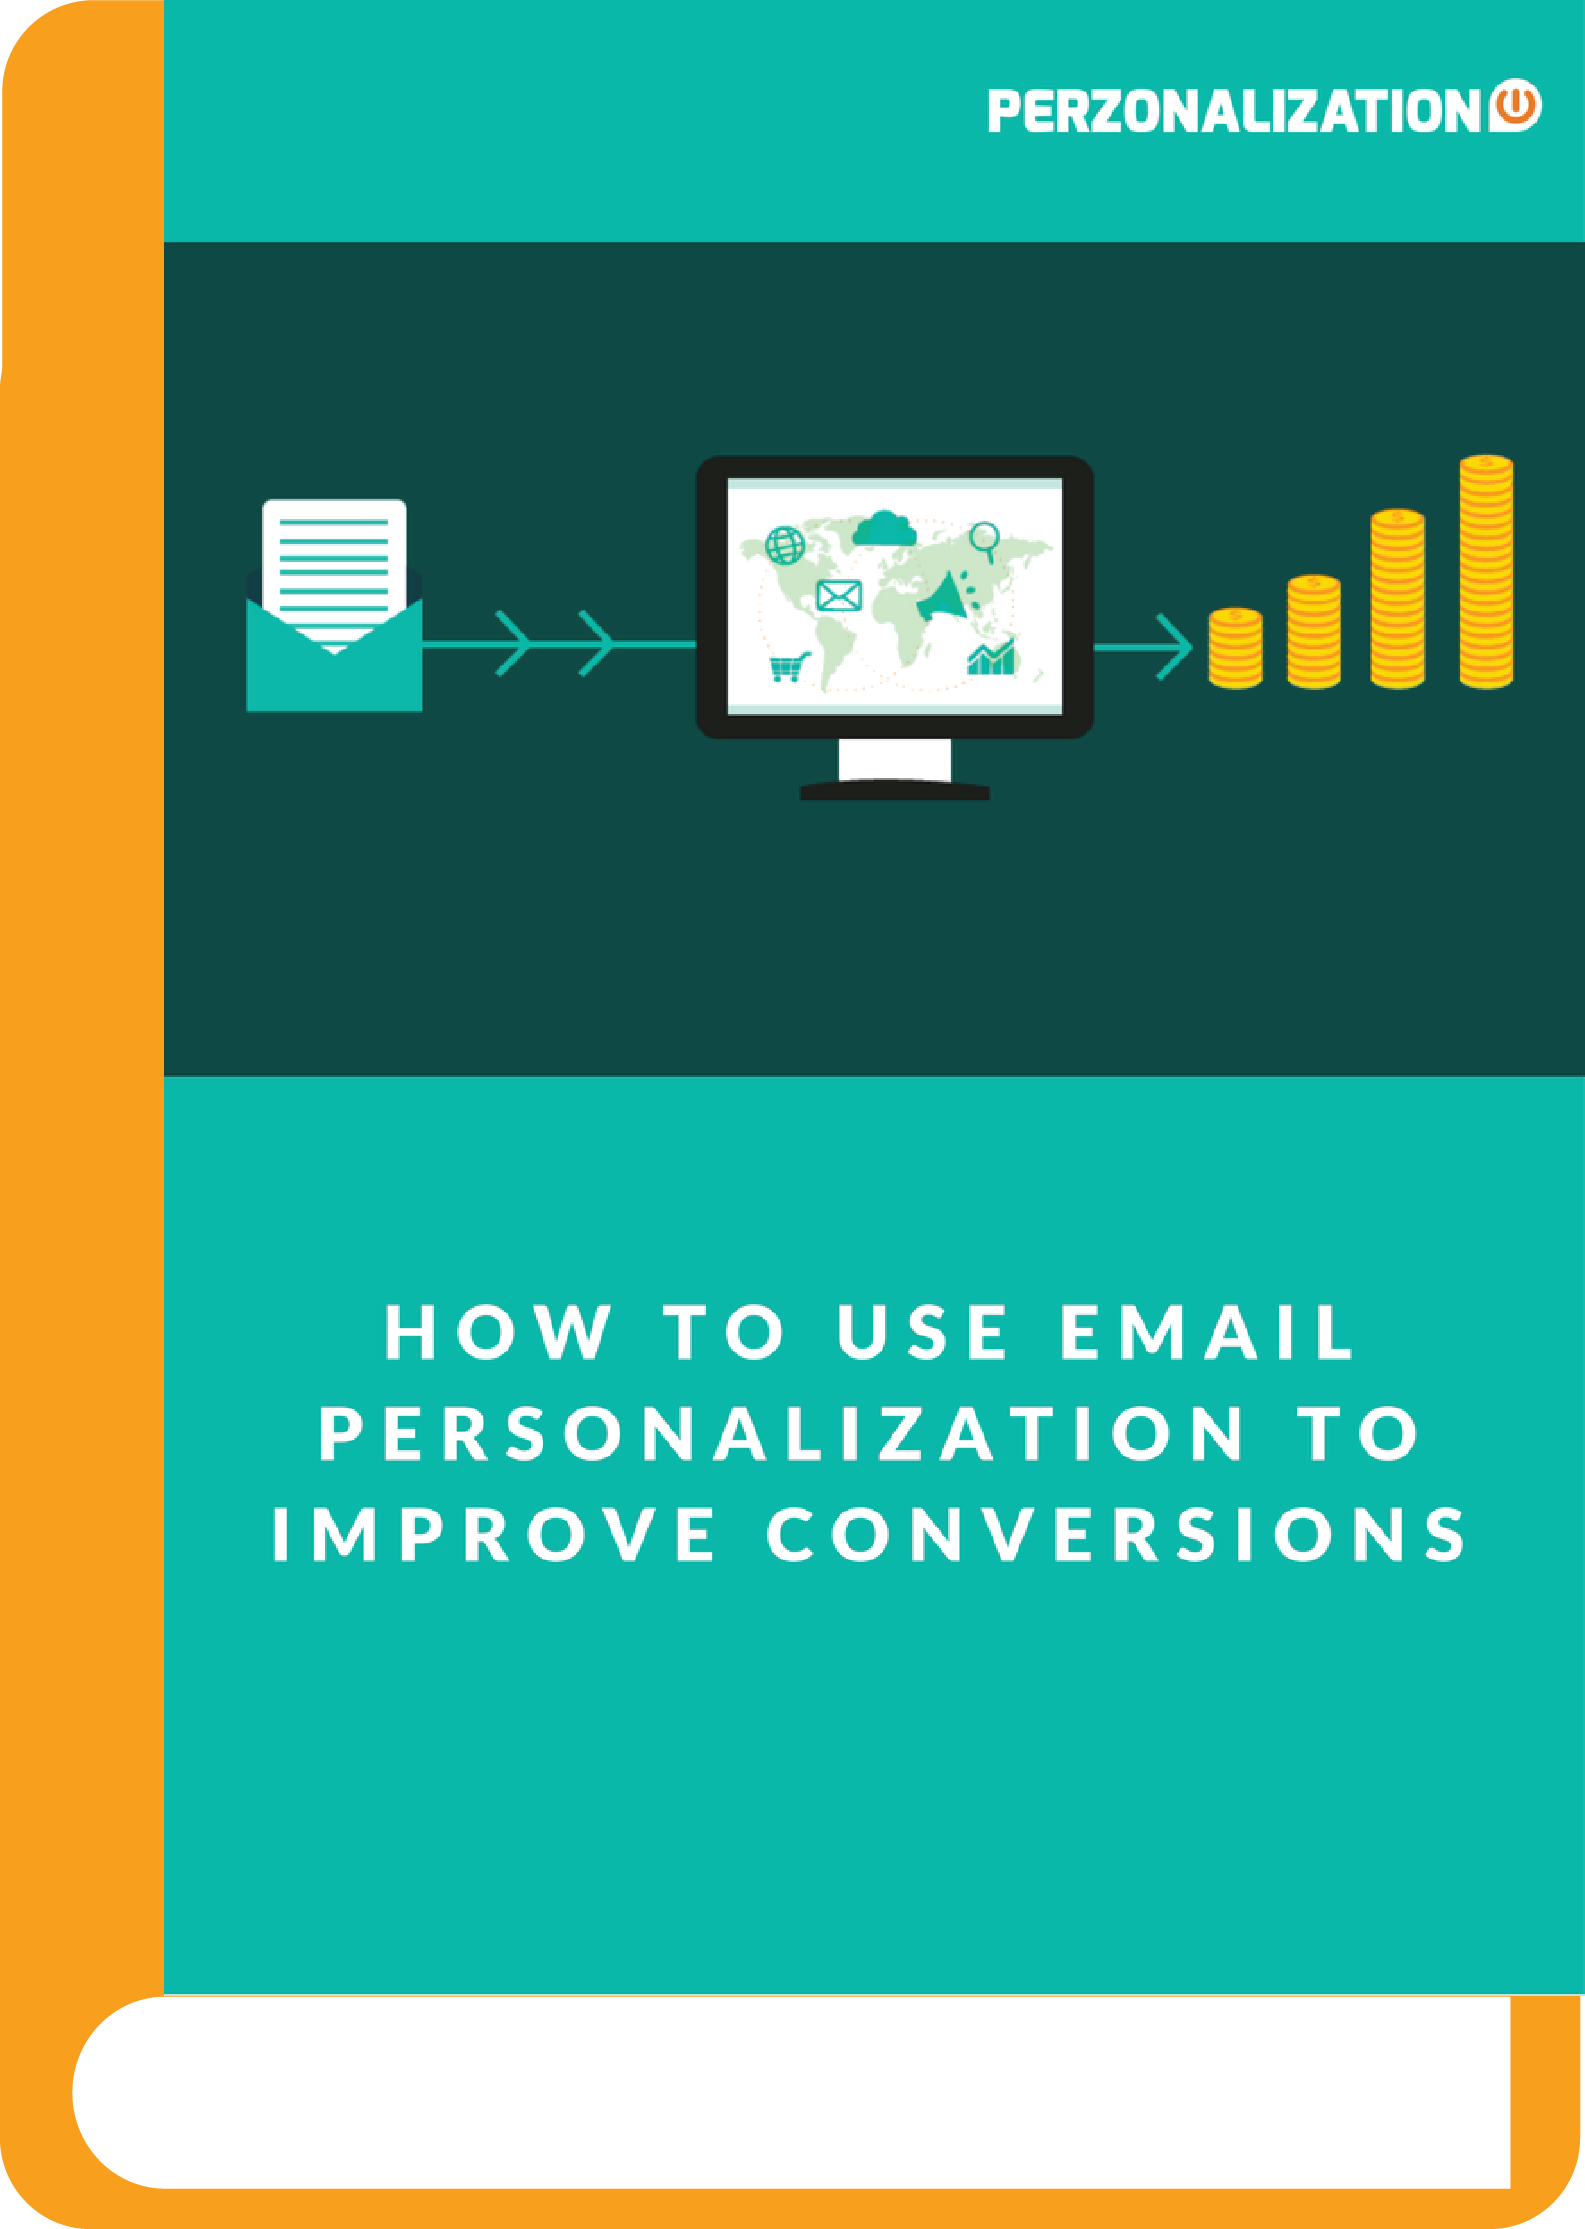 Email personalization is one of the key elements to stand out in the eCommerce marketing. Personalized subject lines in an email drags more attention.